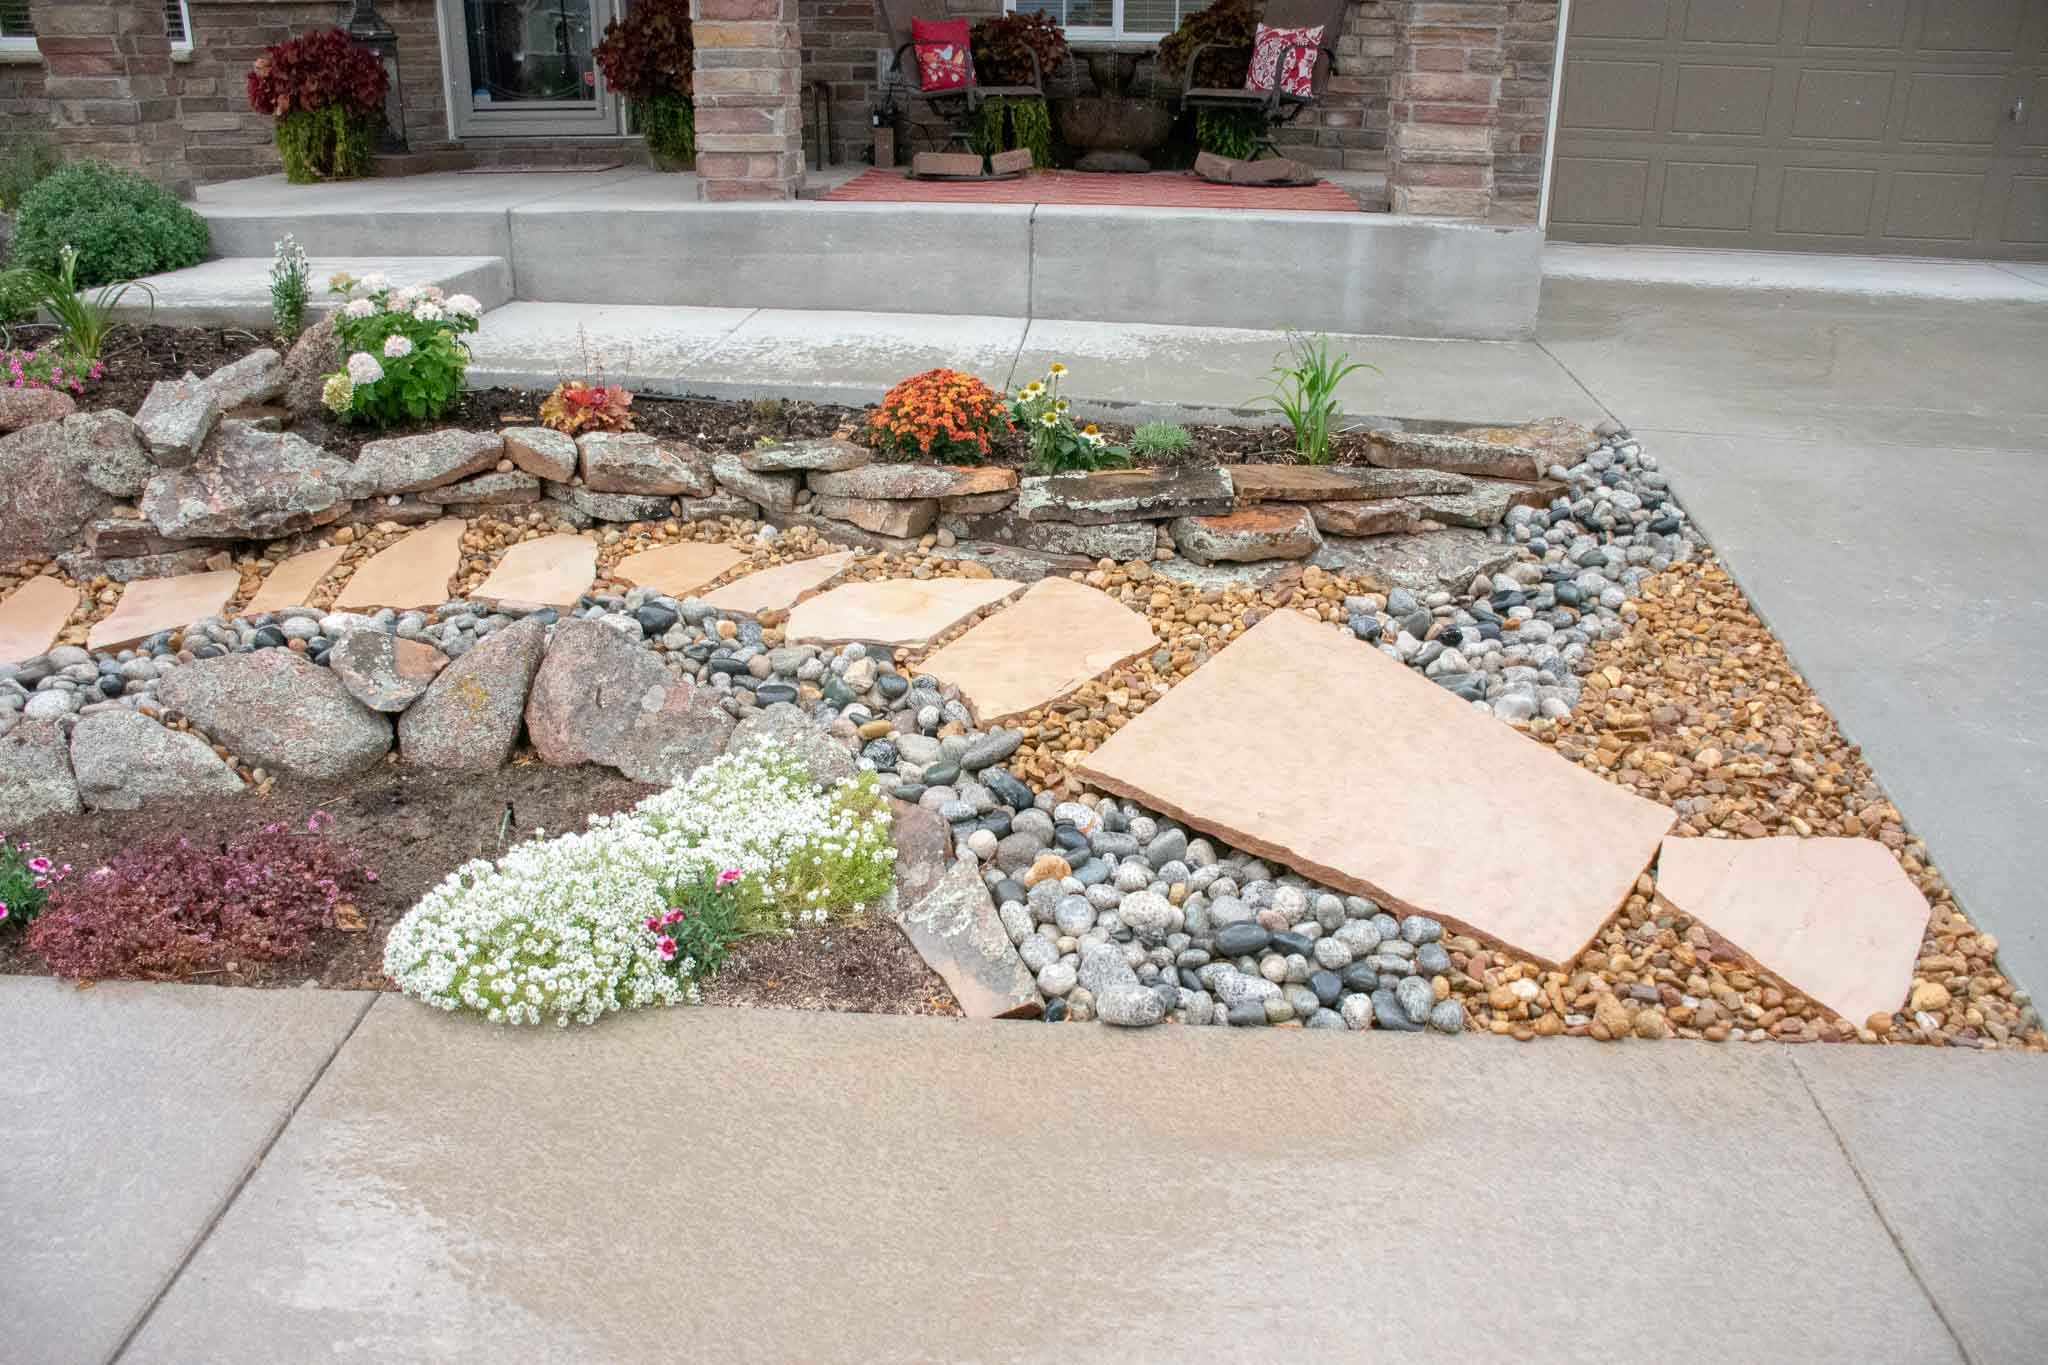 Front yard xeriscape that Tri City designed and completed in Loveland, CO 2019  Cobble stone dry river bed and flagstone bridge.